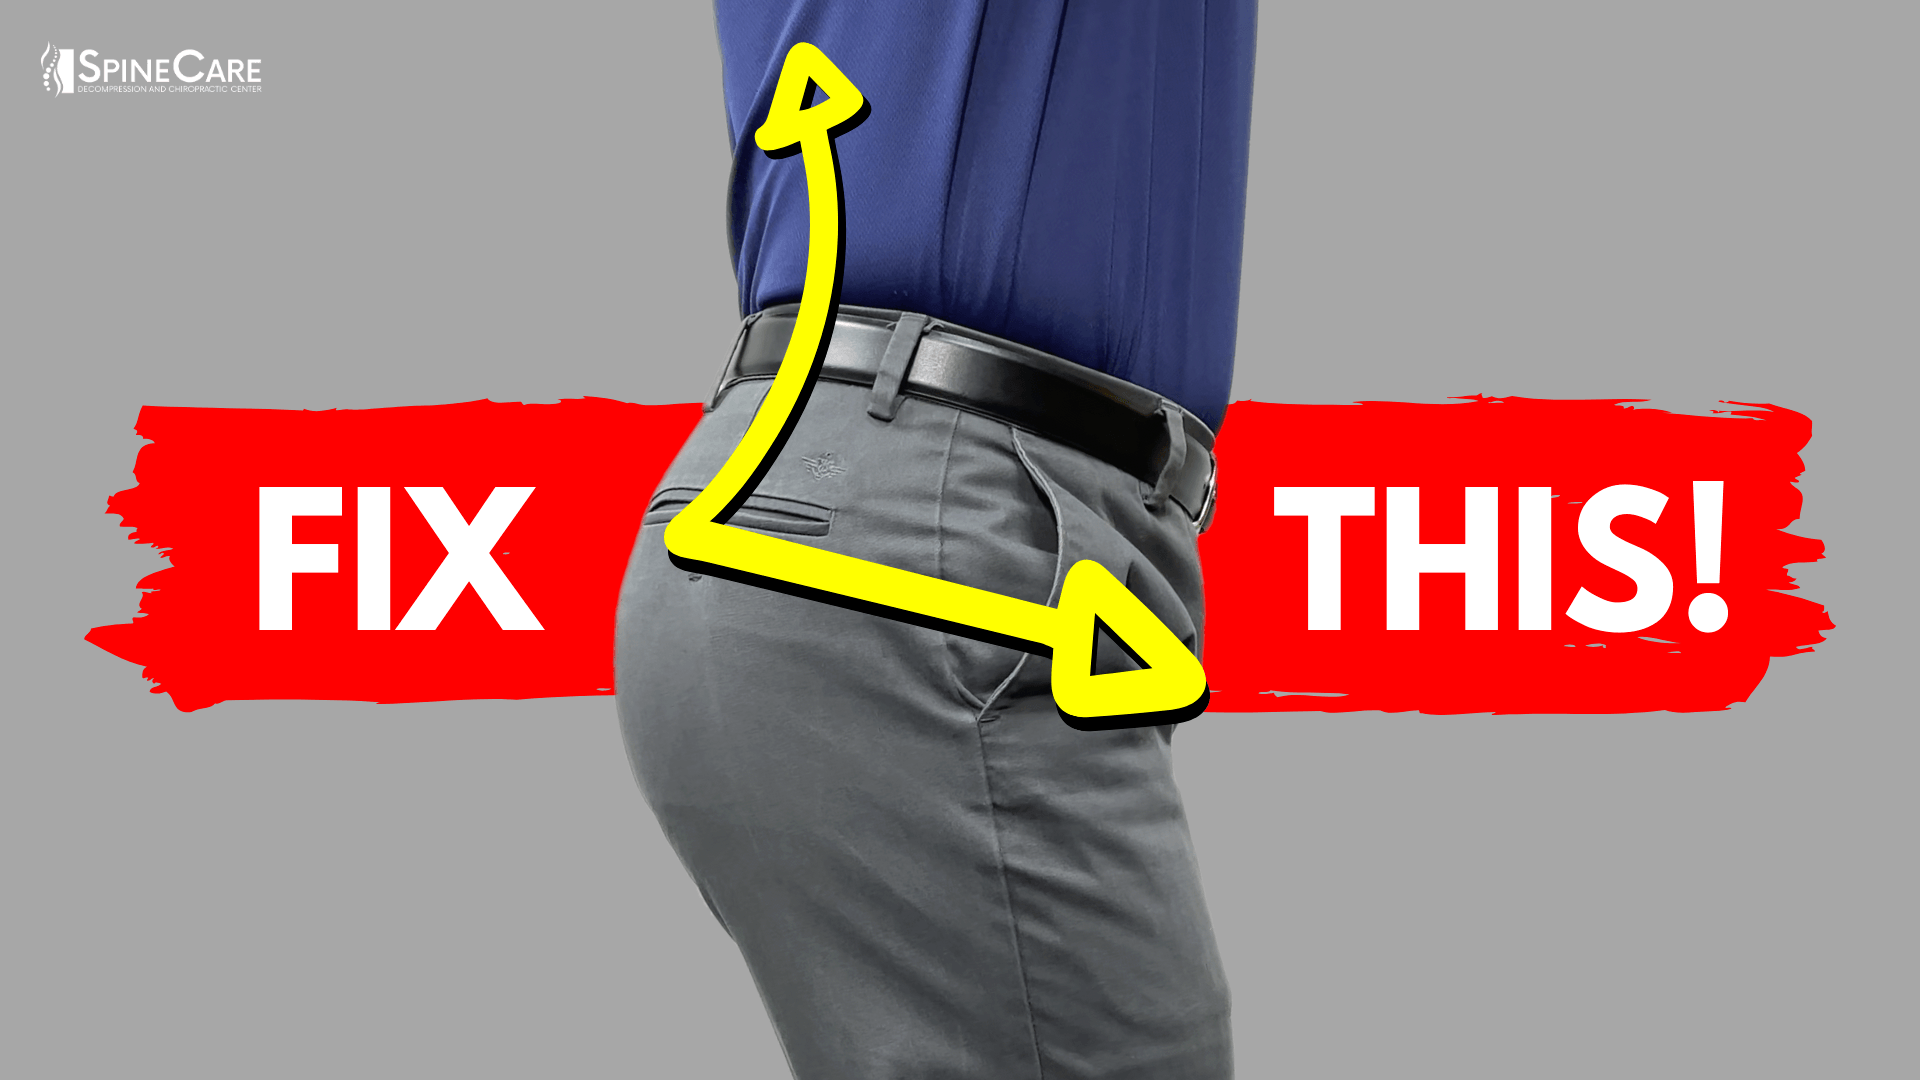 How to Fix Bad Lower Back Posture for Good | SpineCare| St. Joseph, Michigan Chiropractor